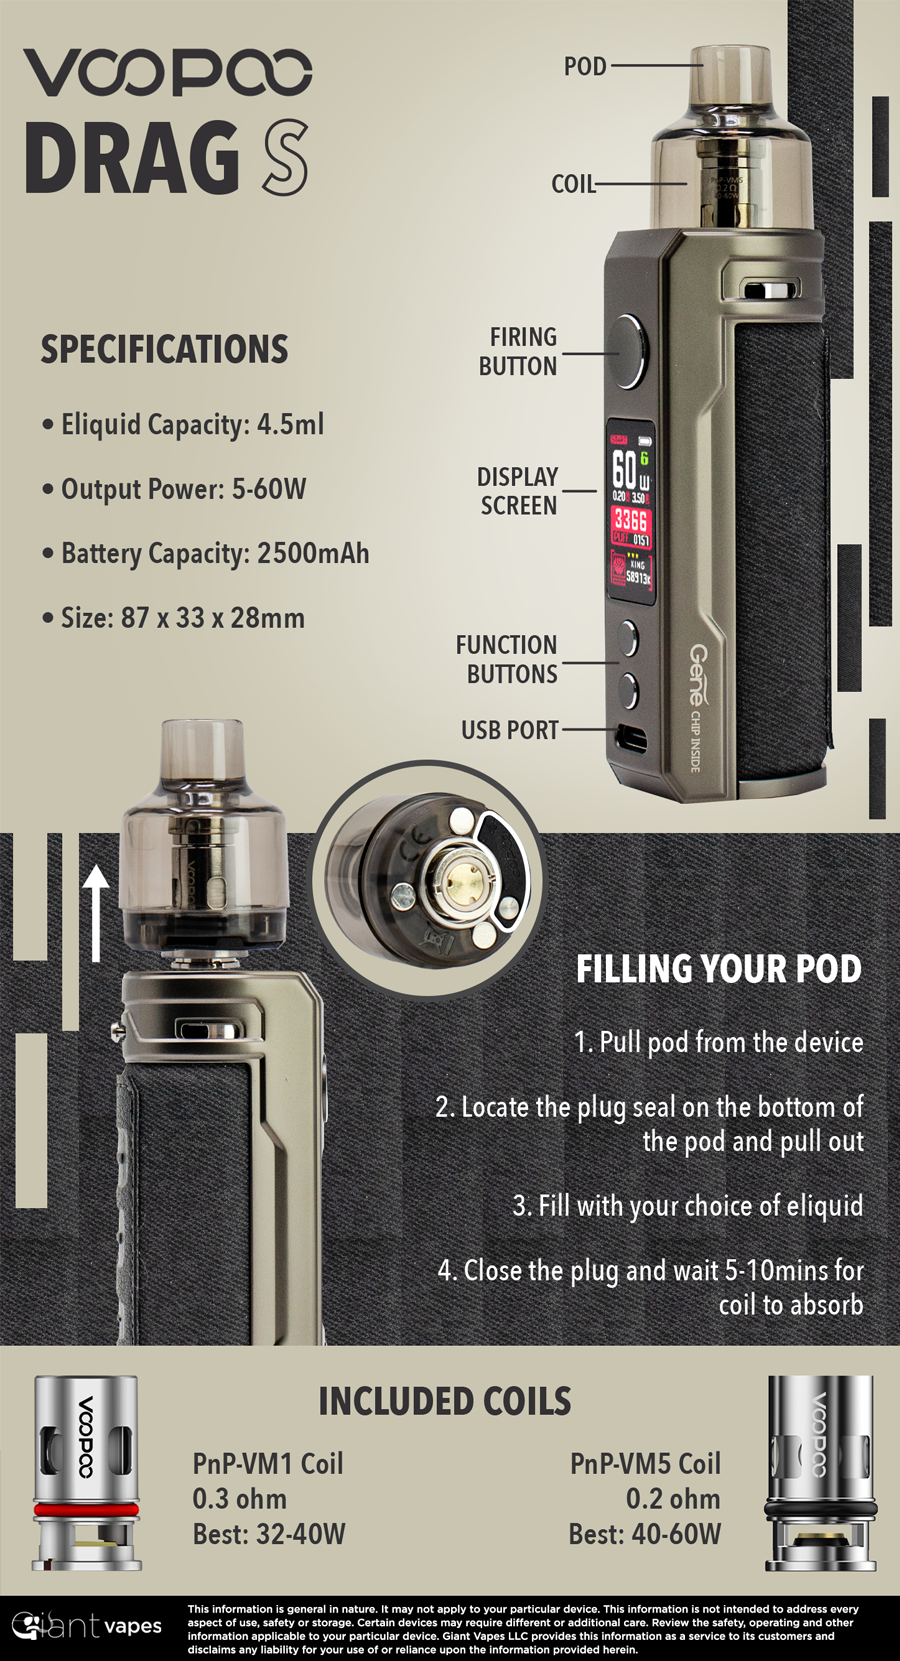 VOOPOO DRAG S Infographic